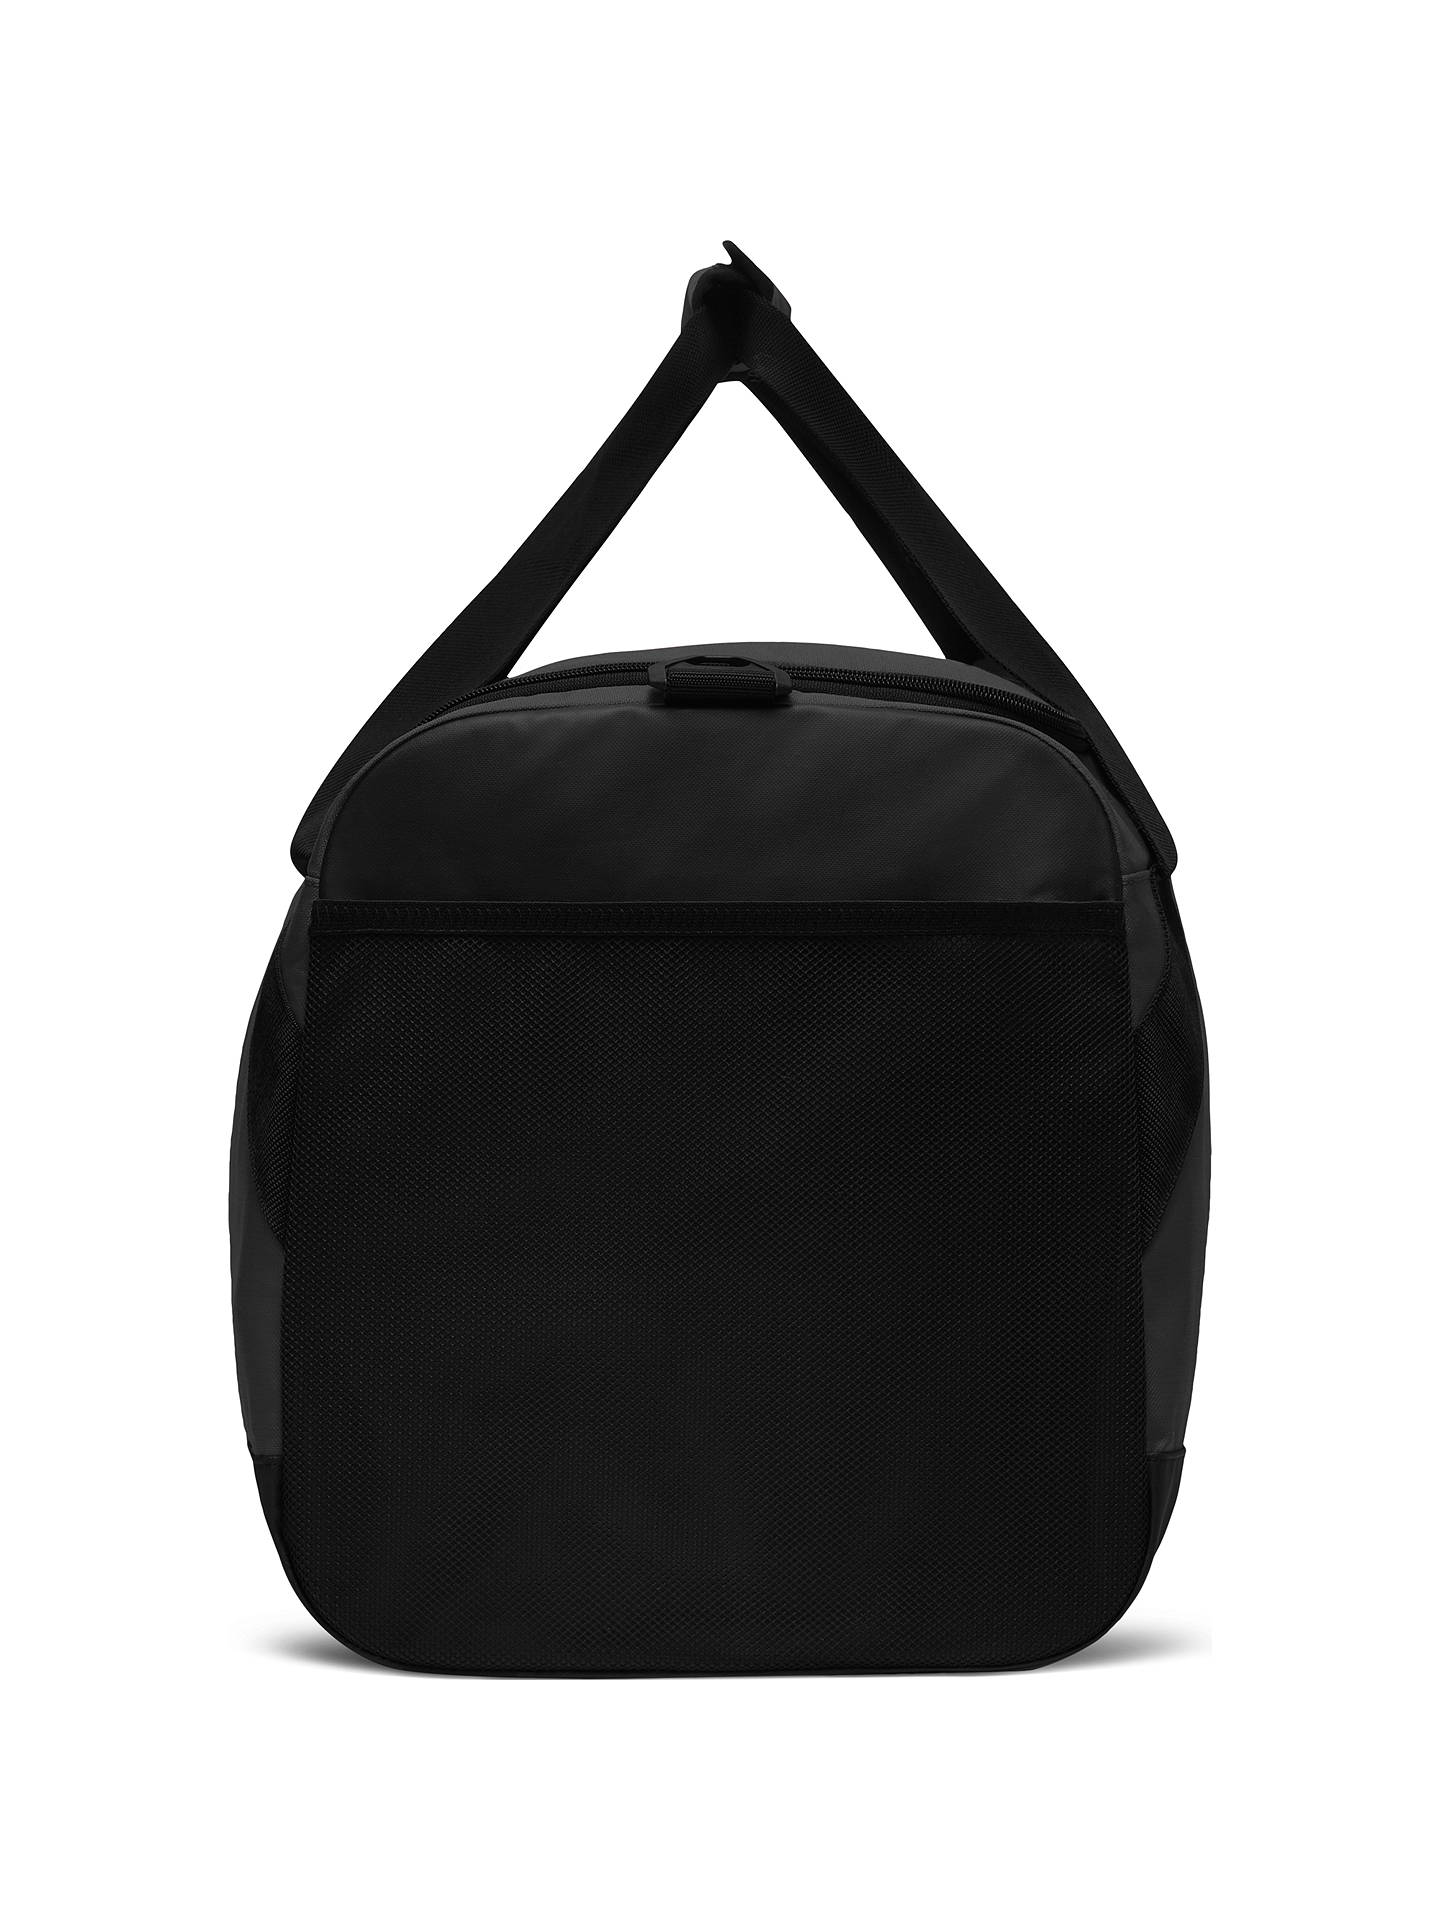 BuyNike Brasilia Large Training Duffle Bag, Black Online at johnlewis.com